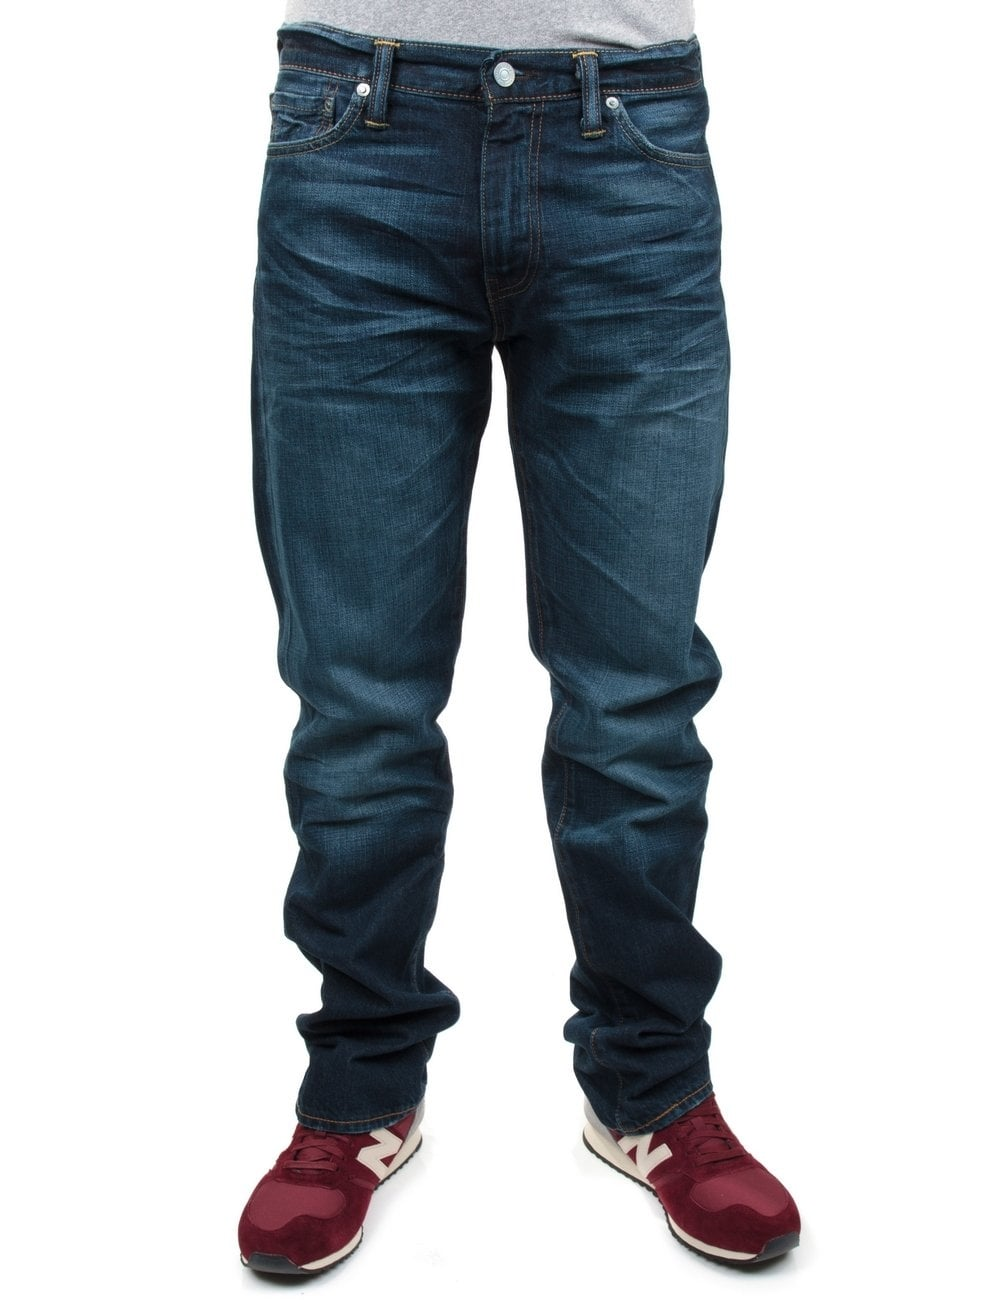 504 Moon Fit Levi's Regular From Blue Clothing Straight Fat pdXq4x4wF